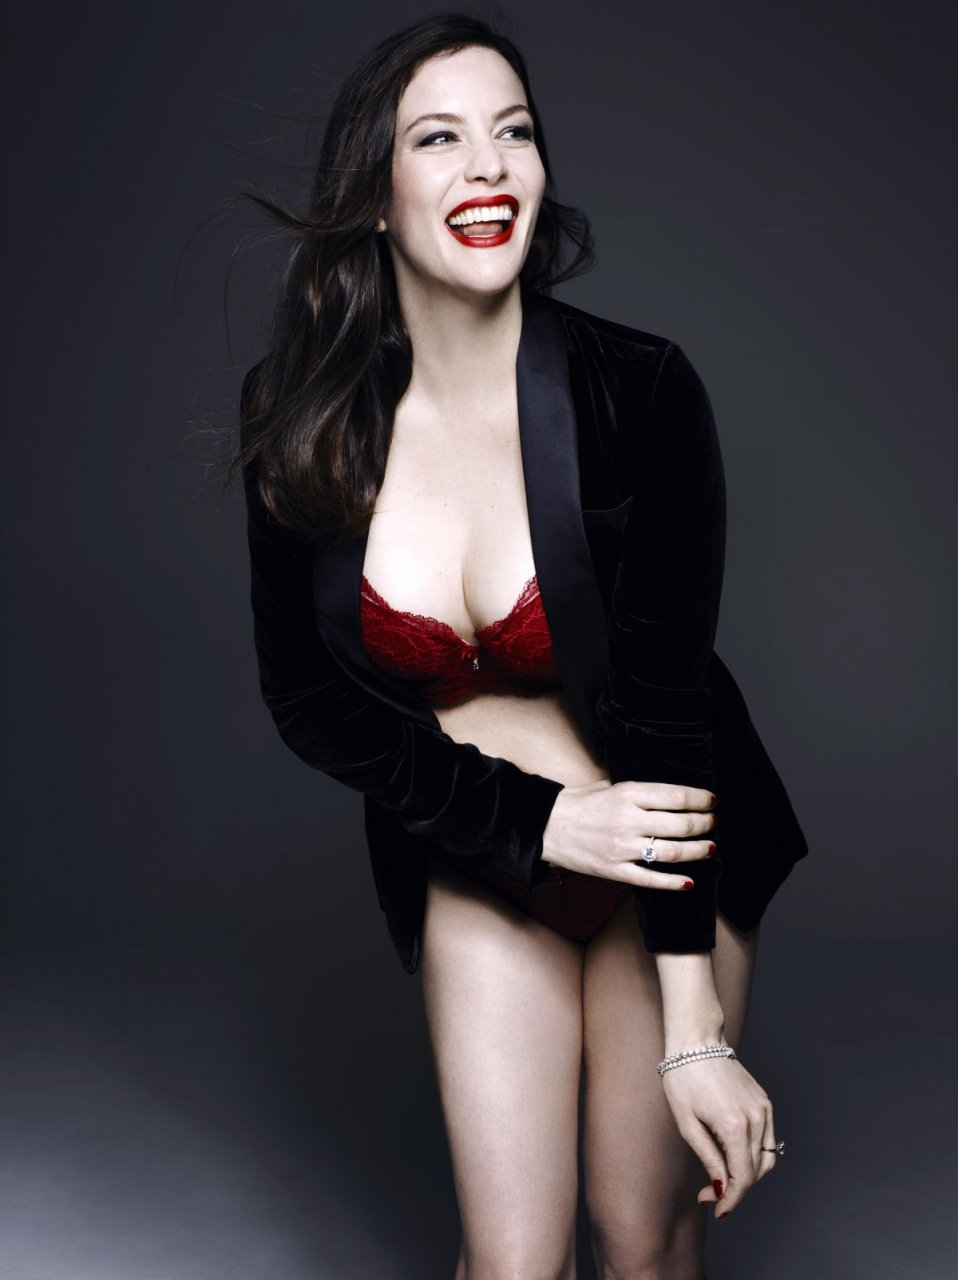 porn with liv tyler